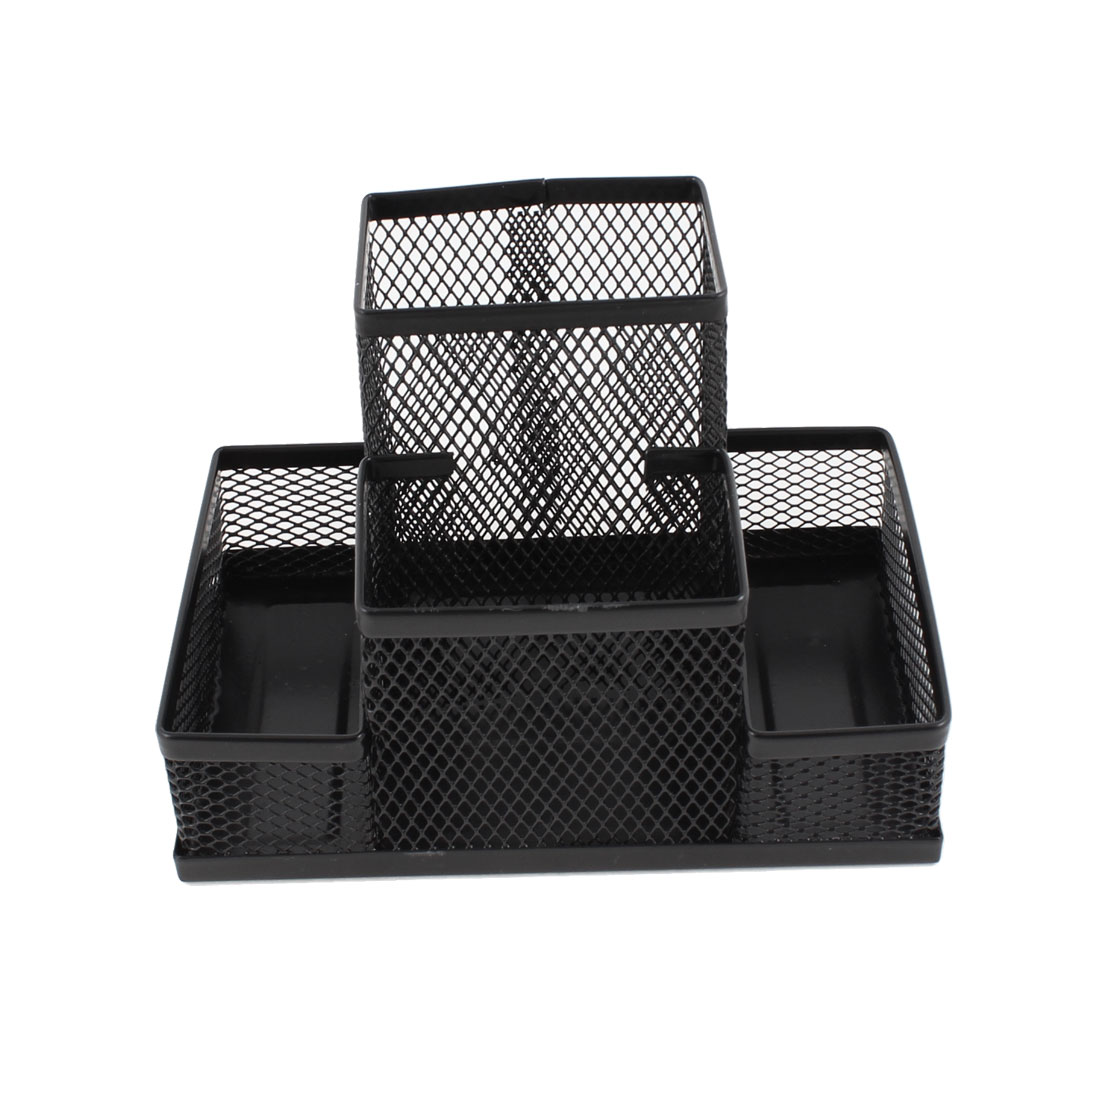 Black Desktop Decoration 4 Compartments Mesh Pencil Holder for Students